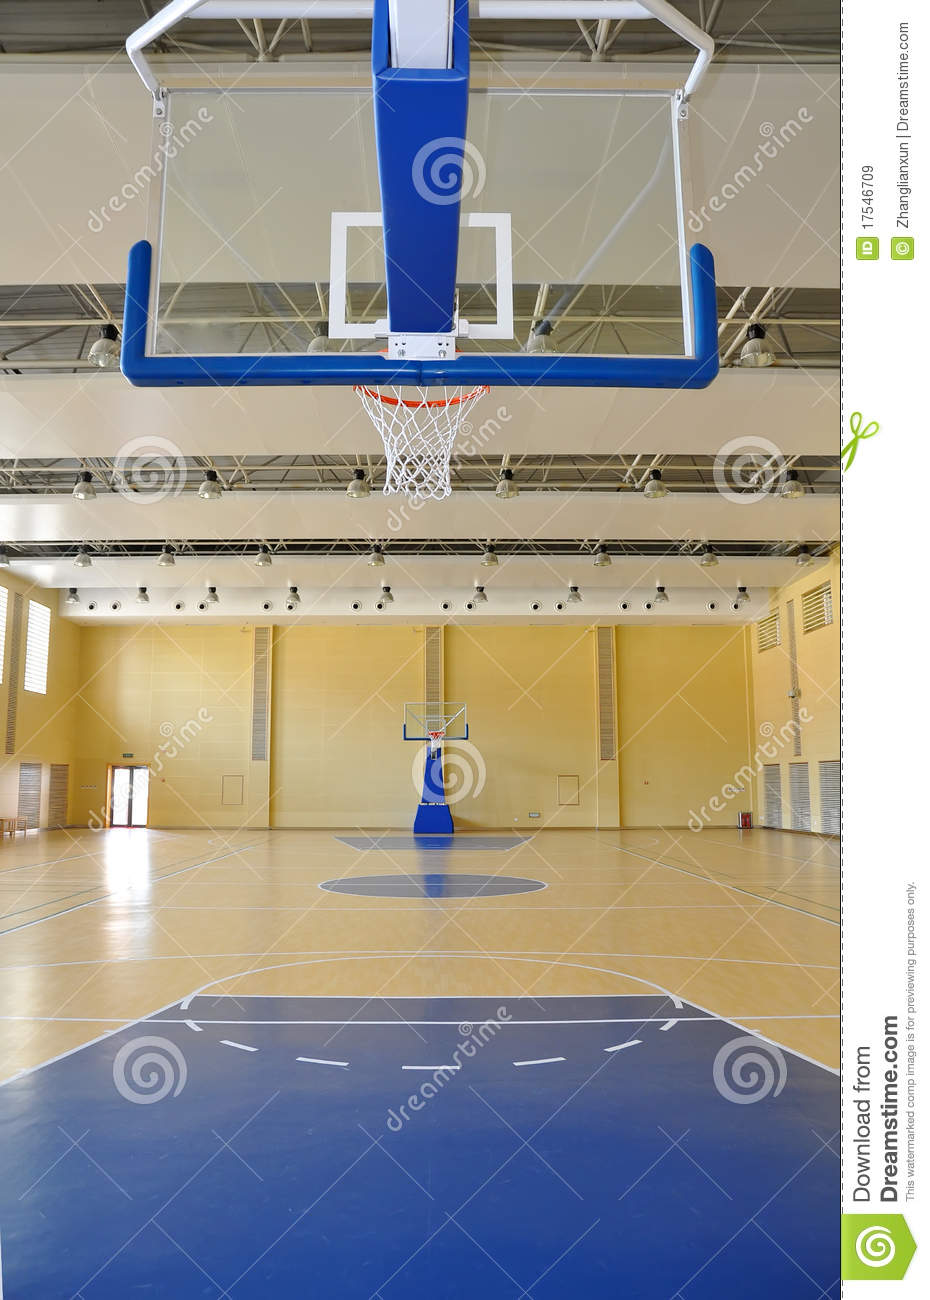 Basketball Court Stock Image Image Of Courts Goal Stage 17546709